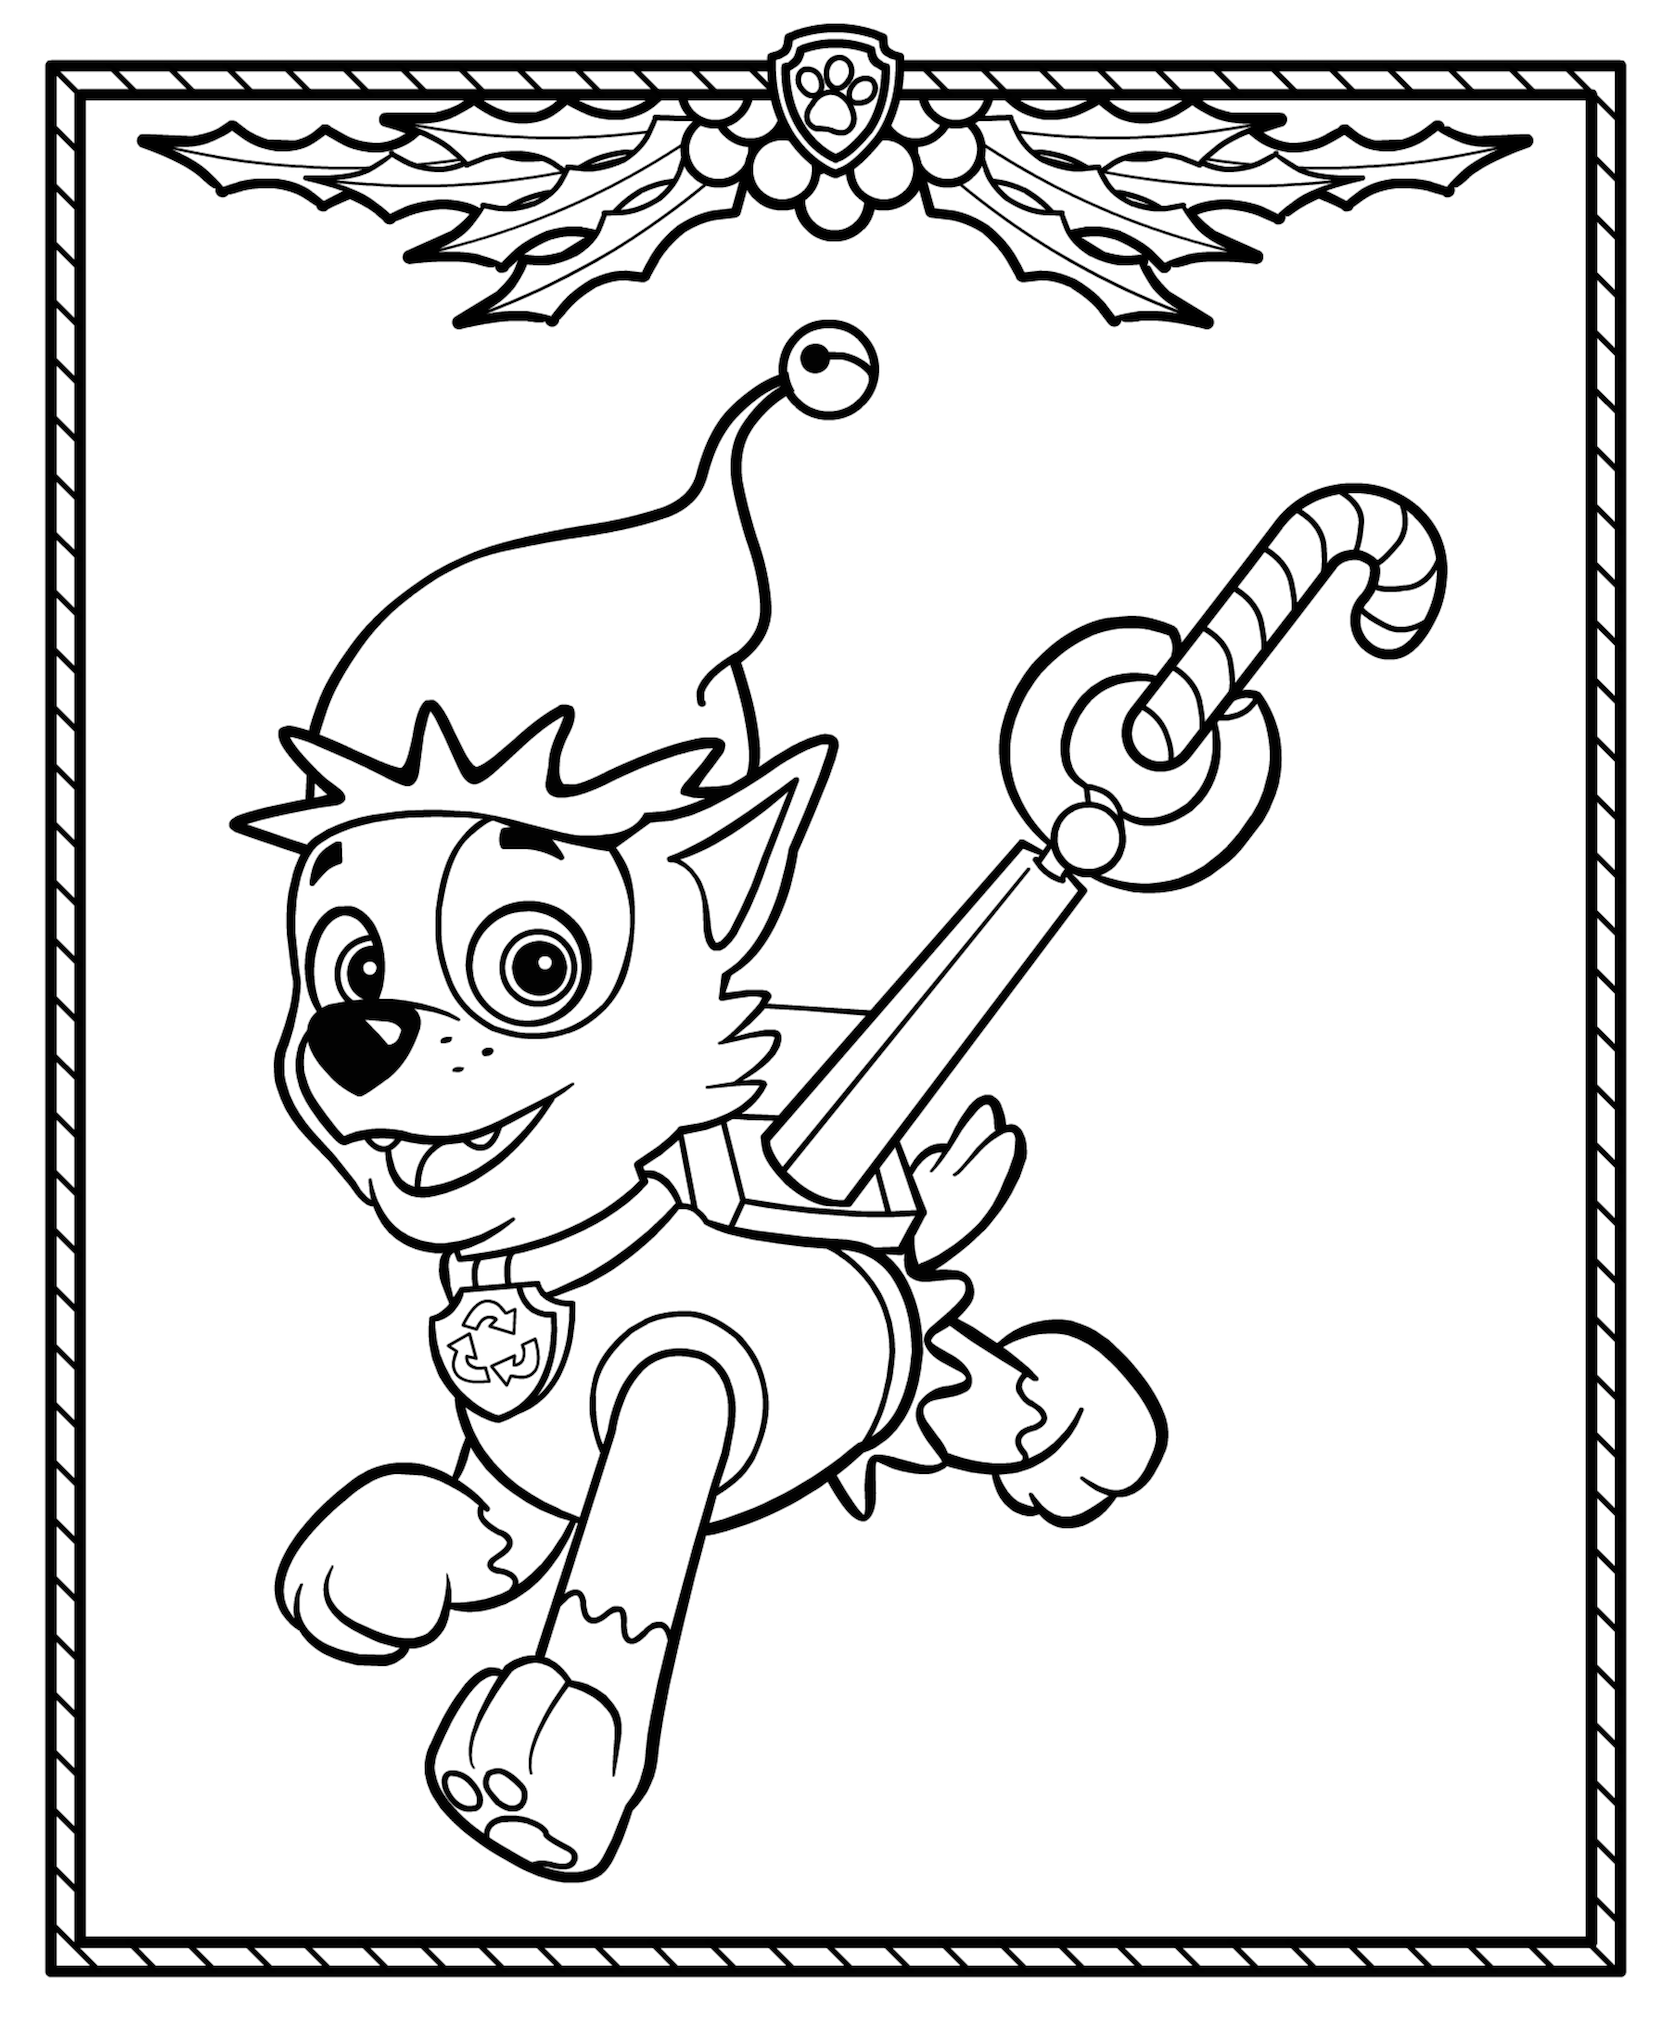 Christmas Coloring Pages Paw Patrol Coloring Paw Patrol Christmas Halloween Coloring Pages